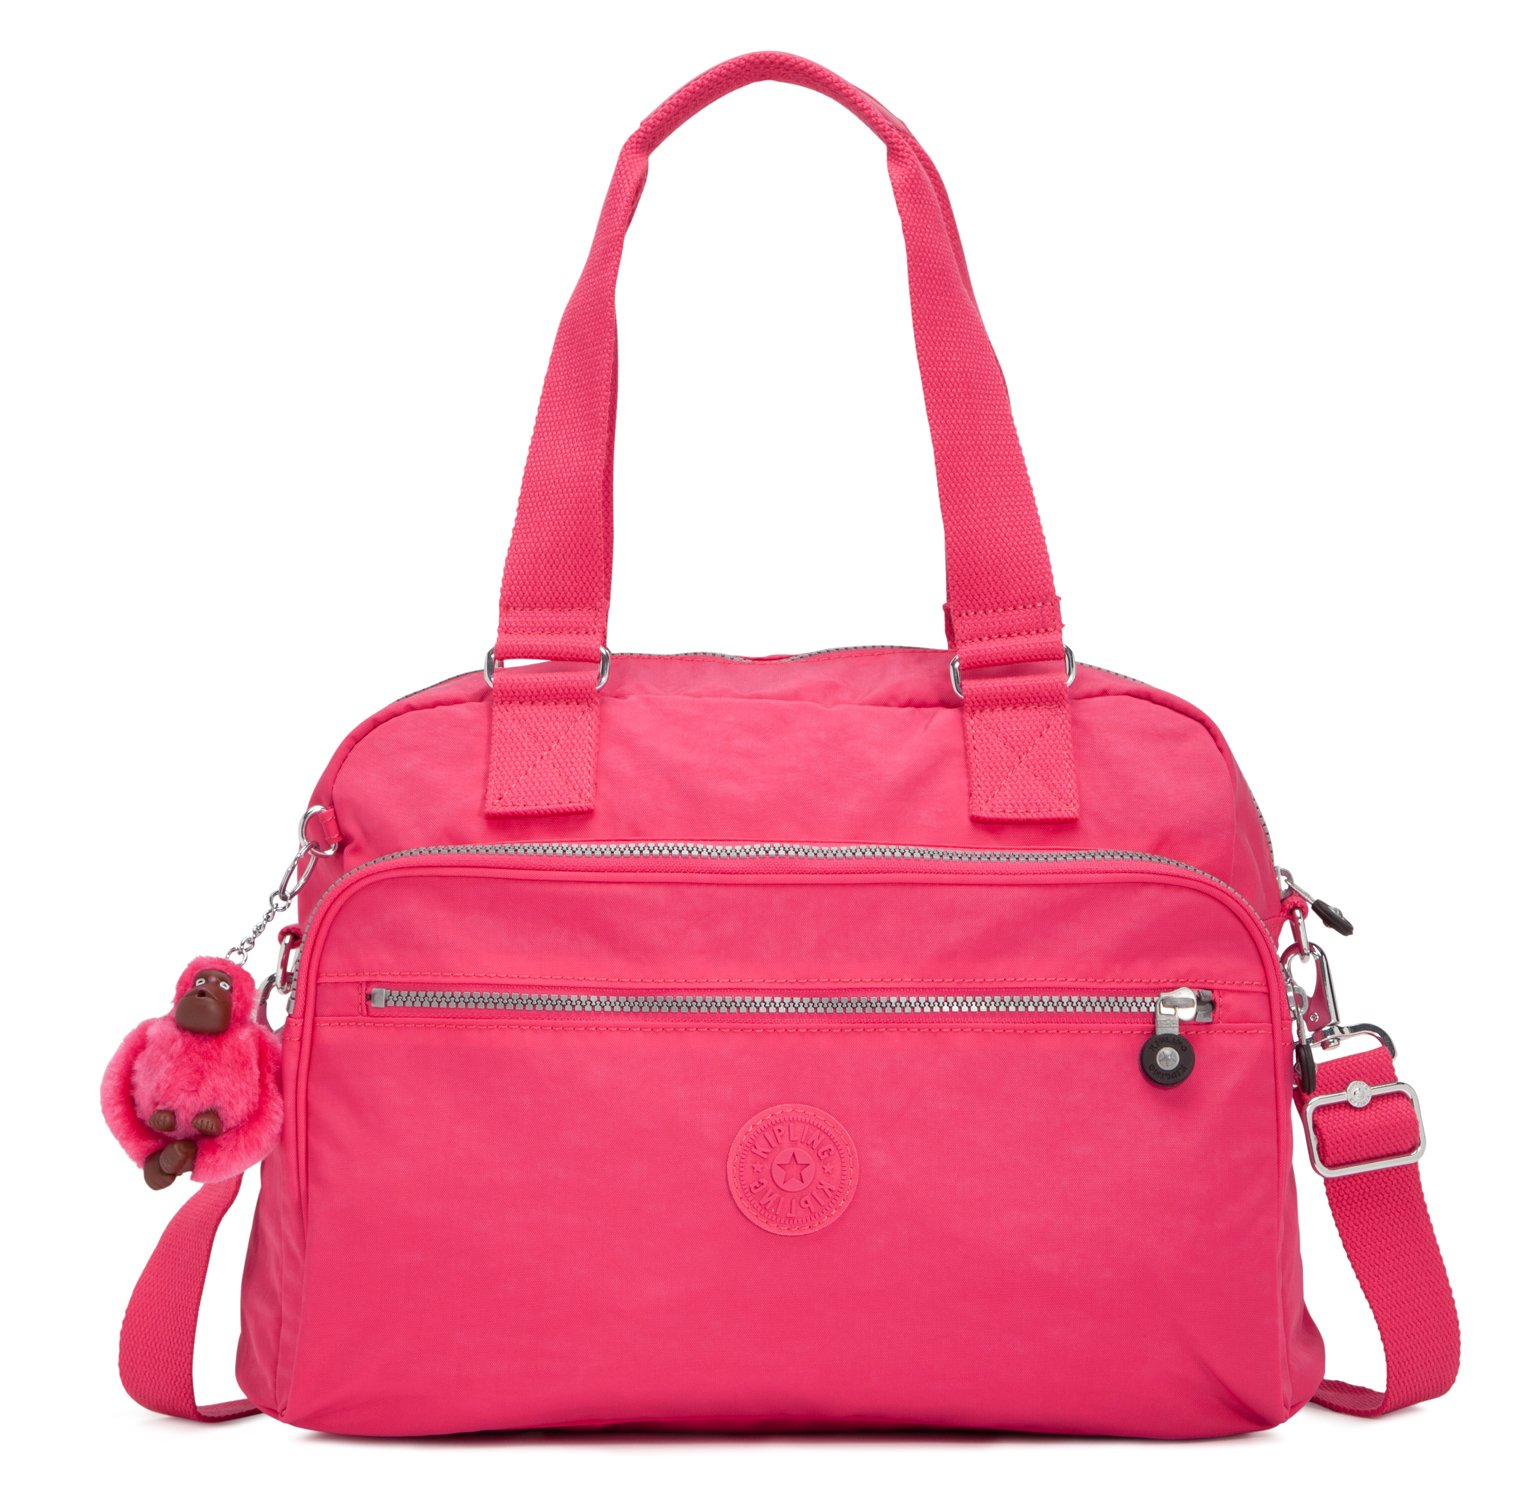 Kipling Newweekend, Vibrant Pink, One Size